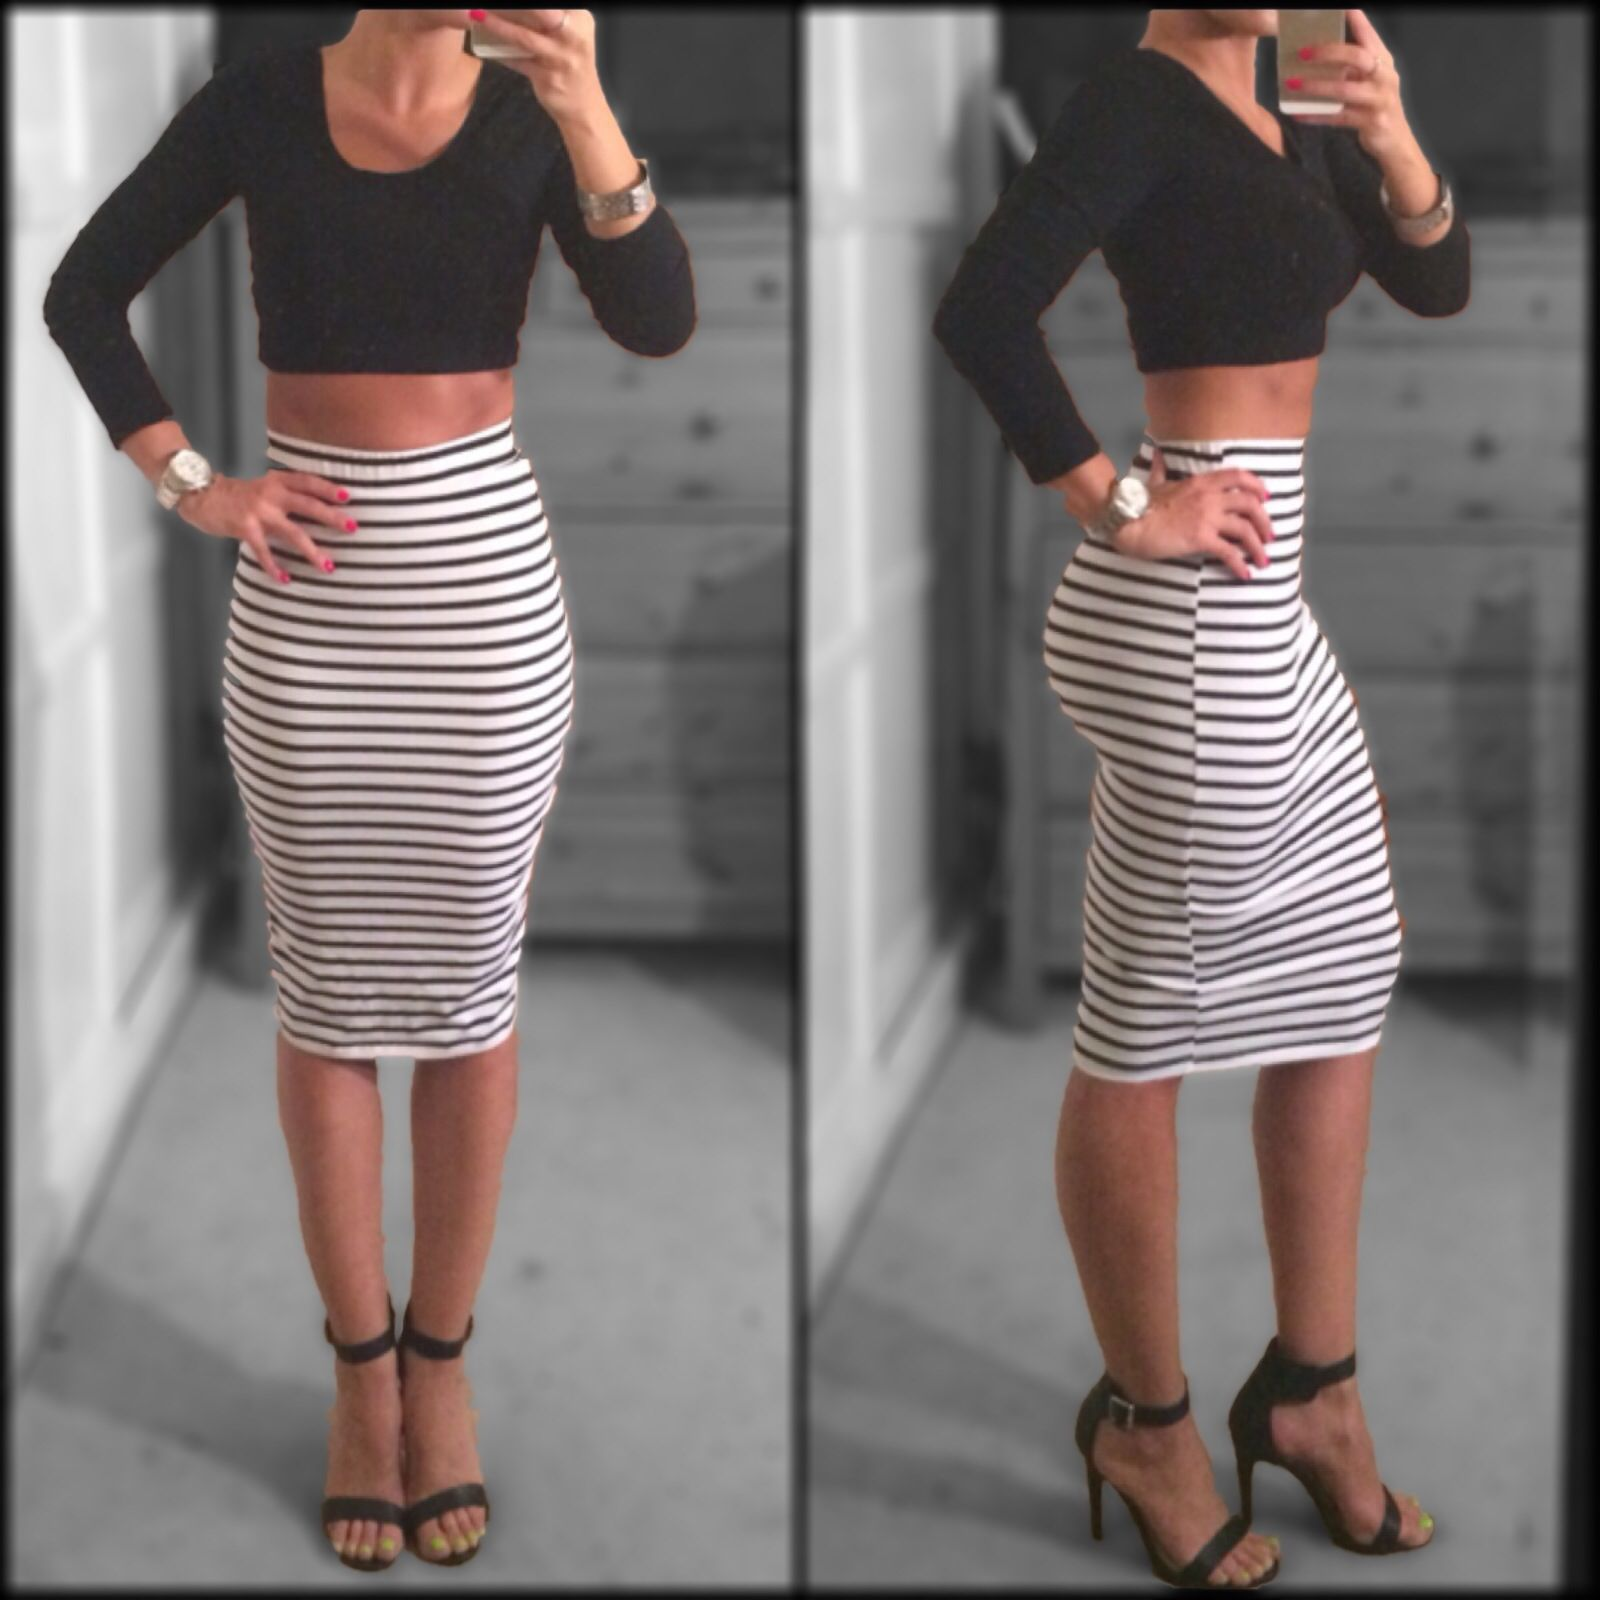 8a9a59f76c High waisted knee length black and white striped skirt, black crop top,  black two strap heels